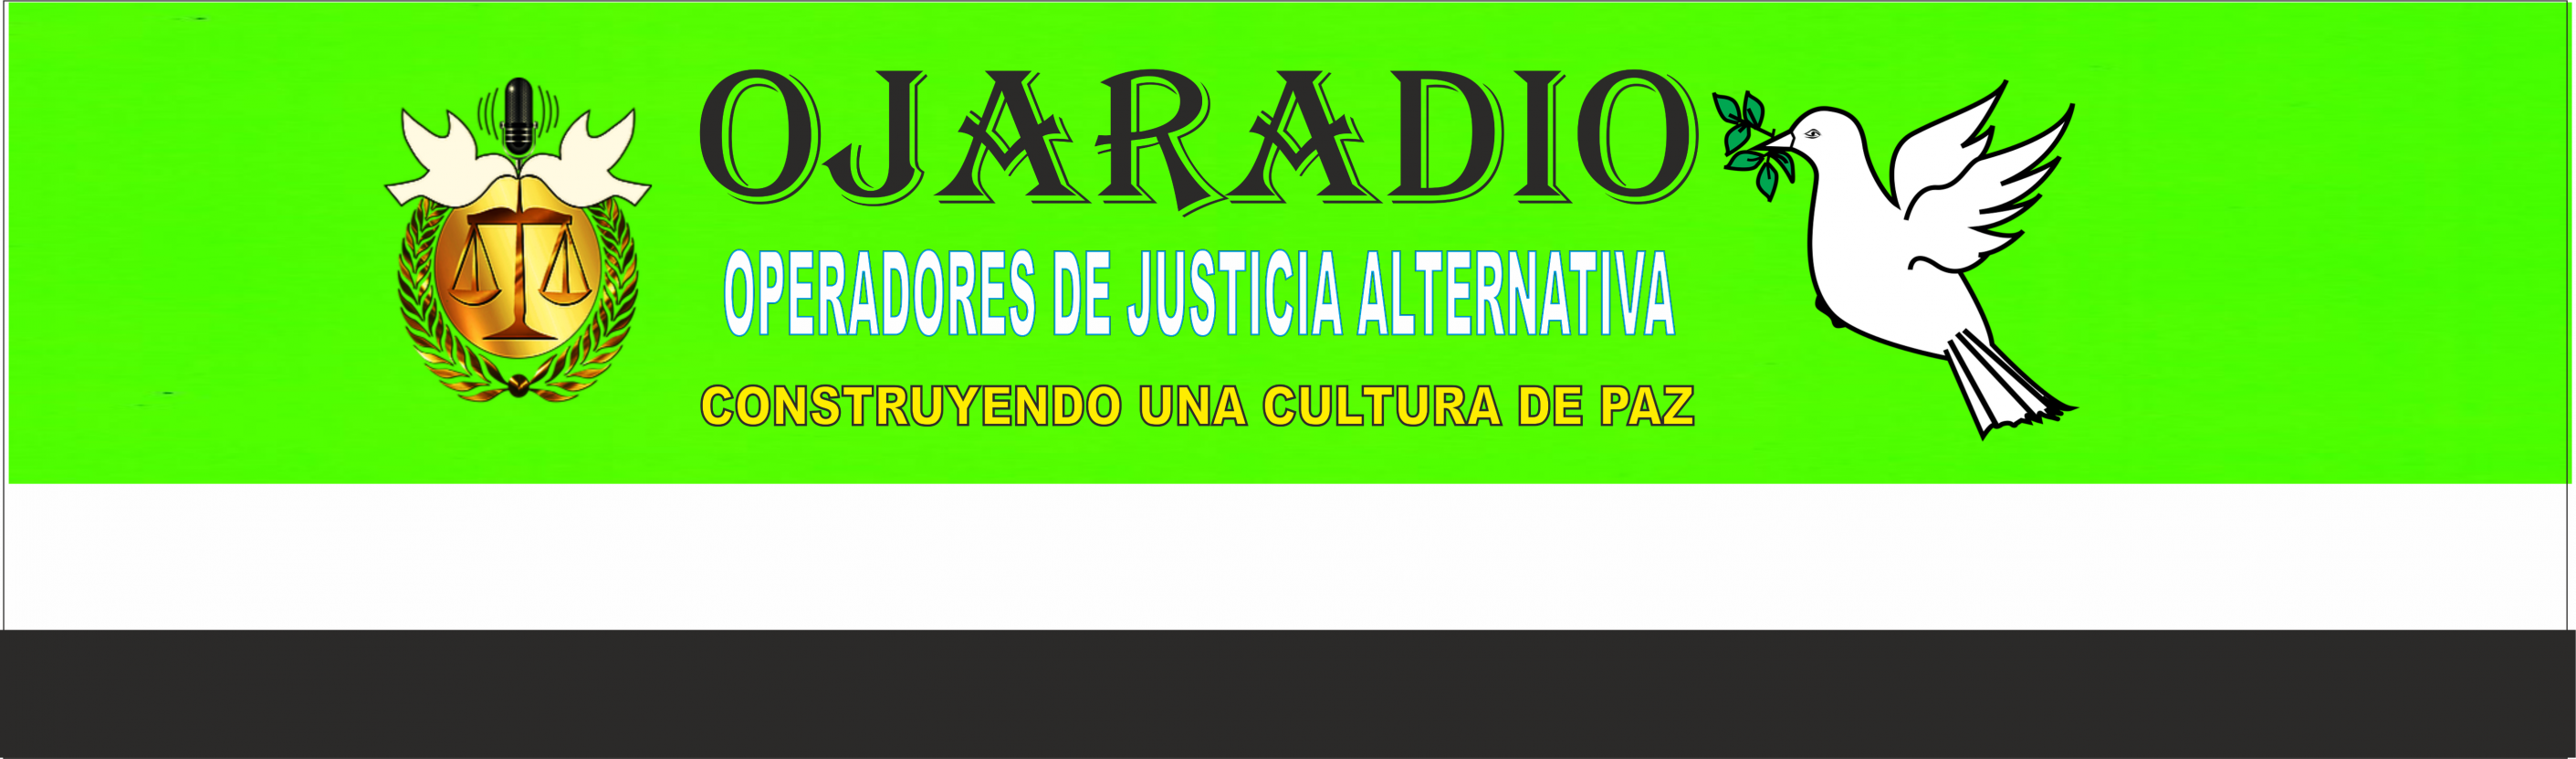 gallery/WEB OJARADIO